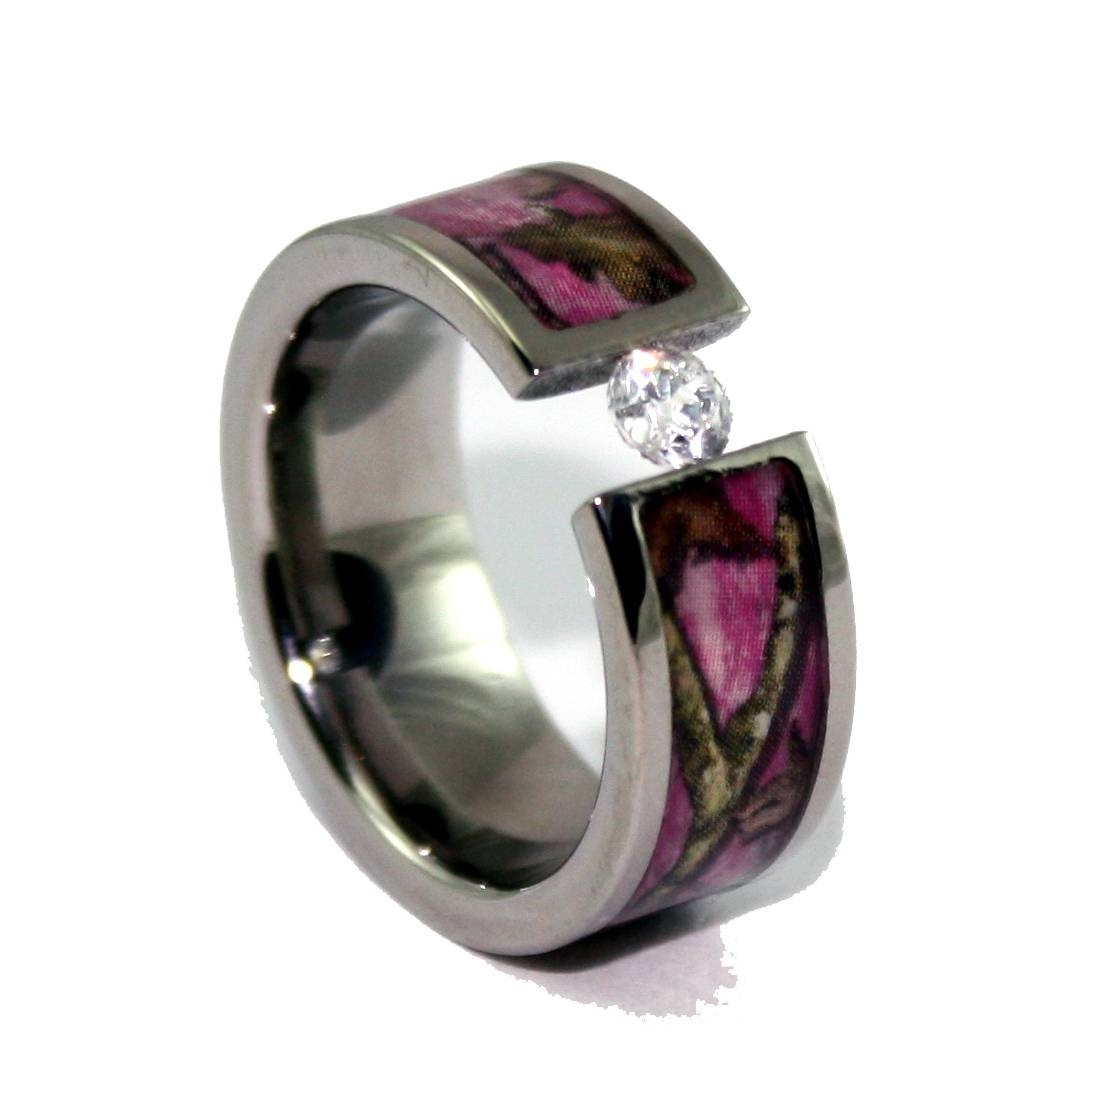 Finest Mm Wide Men S Tree Camo Tungsten Ring Camouflage Wedding In Mens Camo Tungsten Wedding Bands (View 8 of 15)